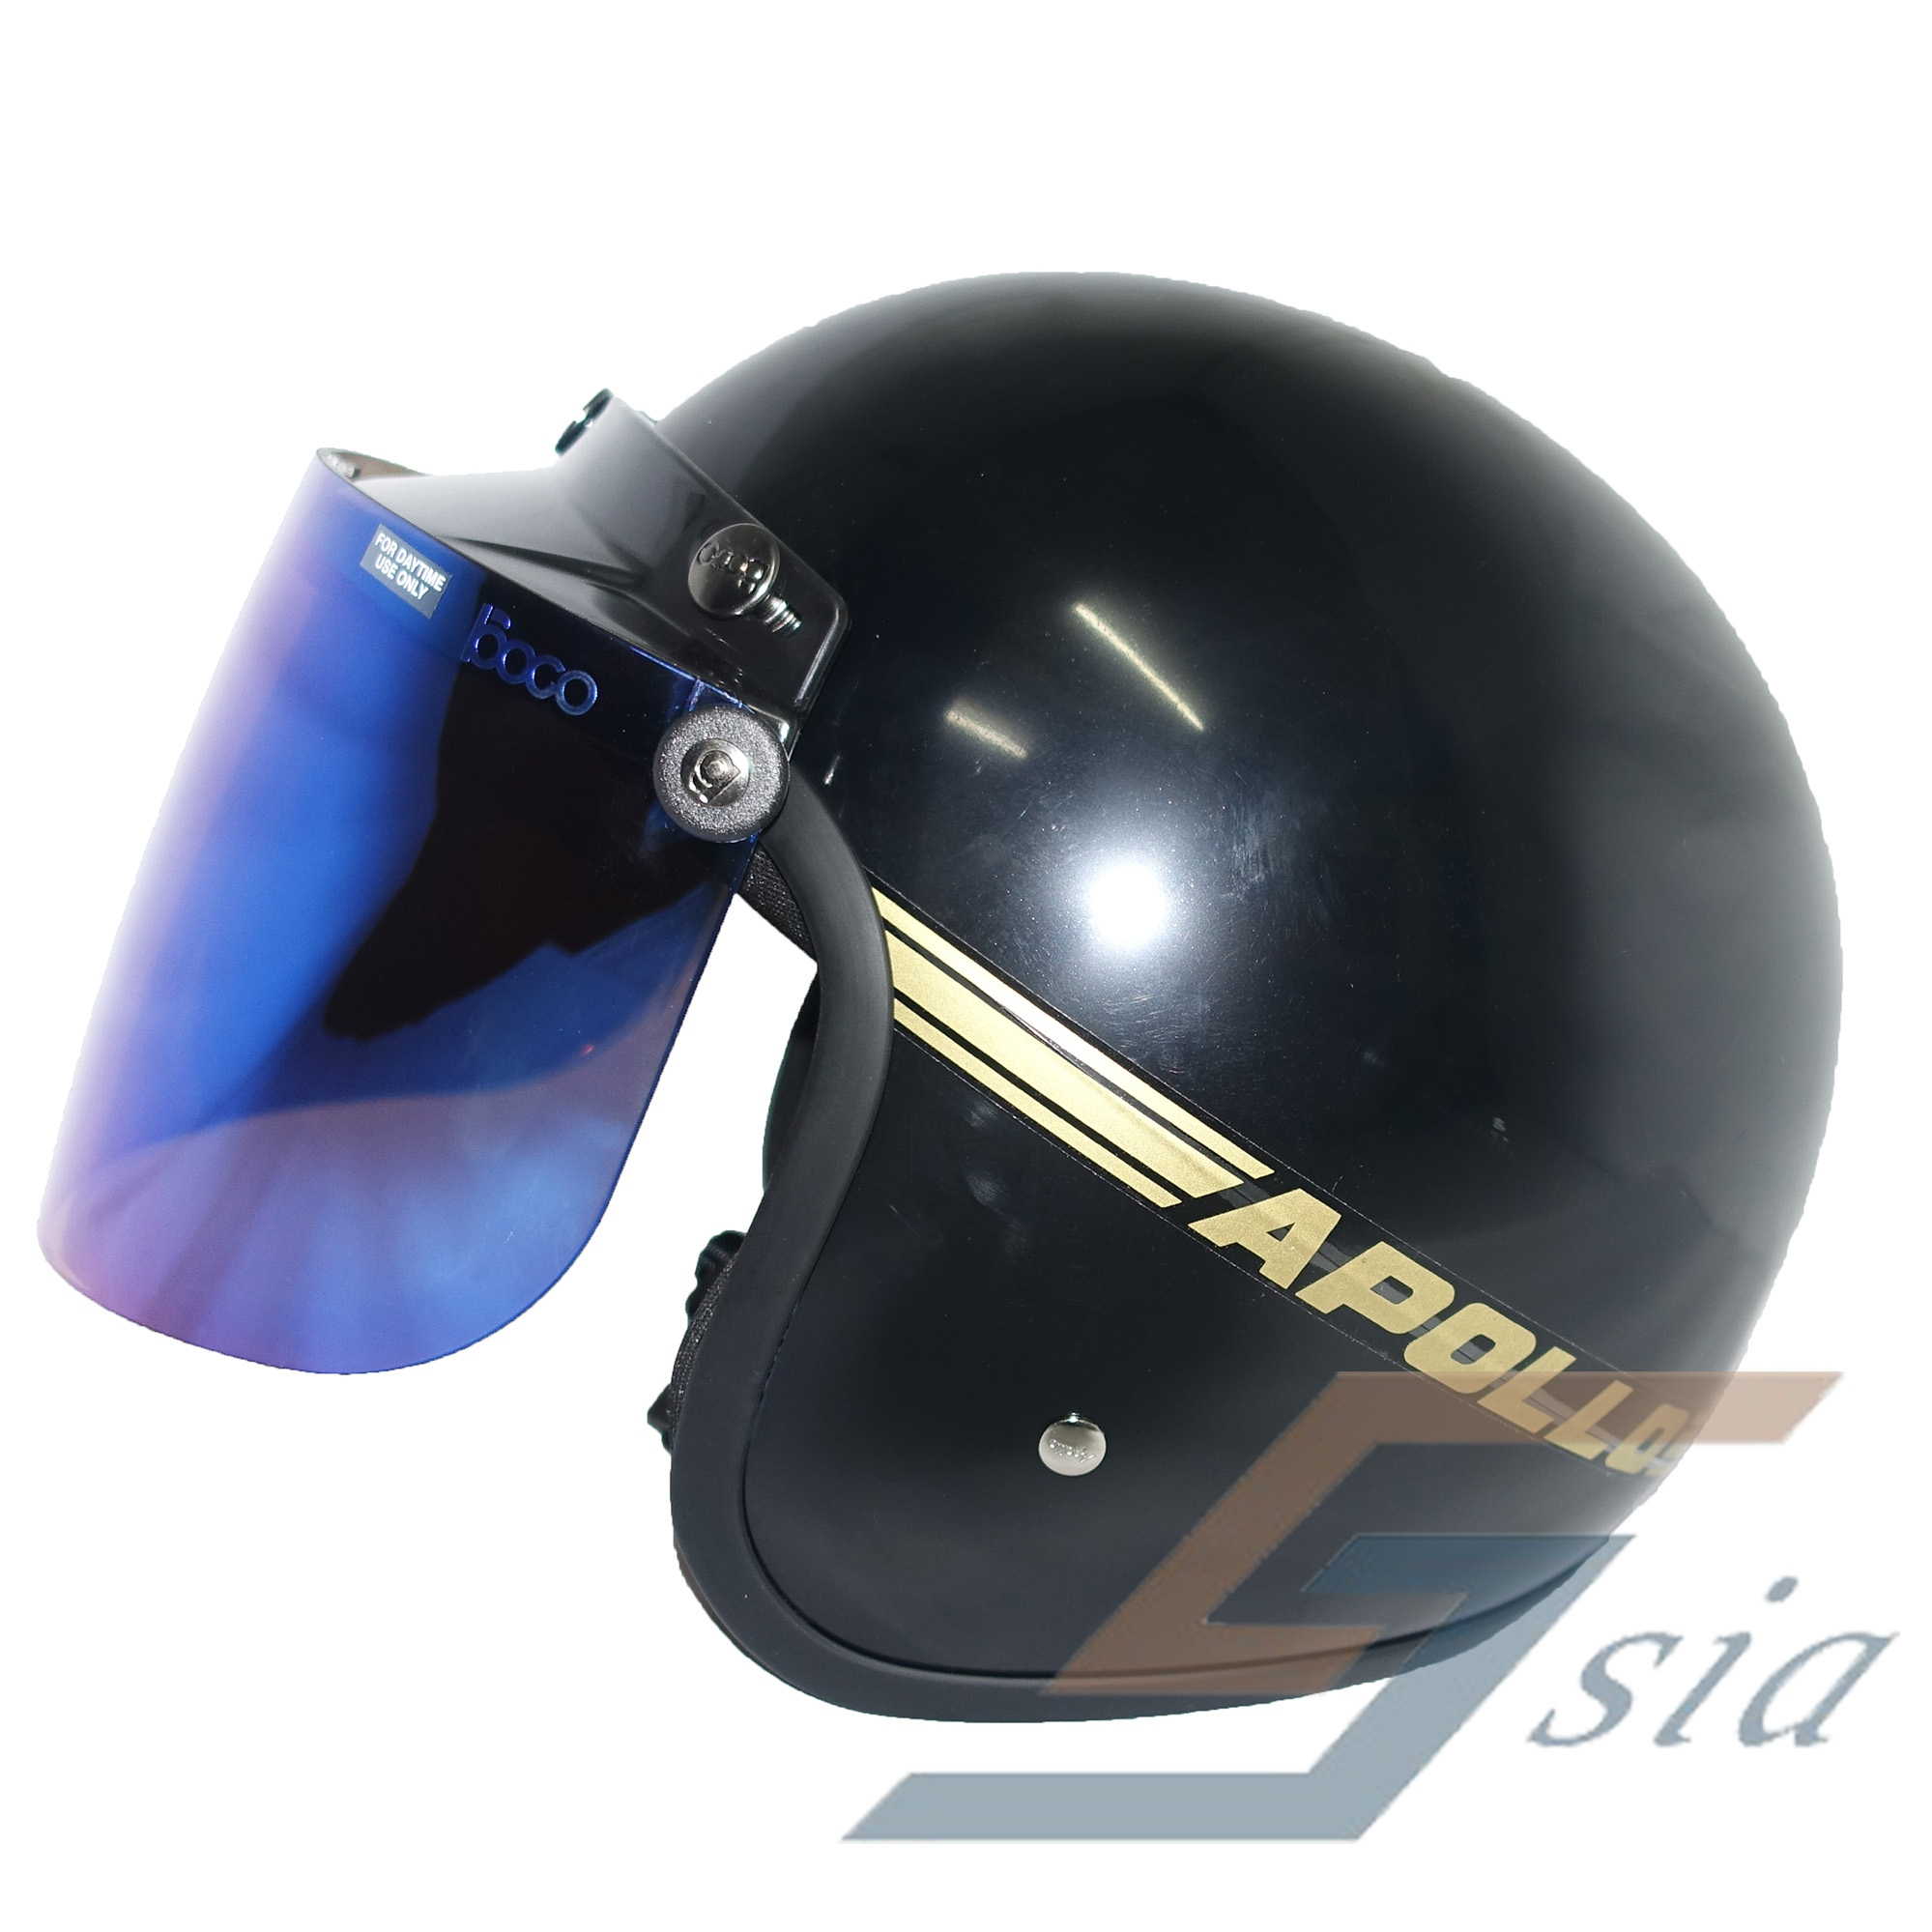 Apollo GS Helmet (Black) + BIKKO Visor (Iridium Blue)